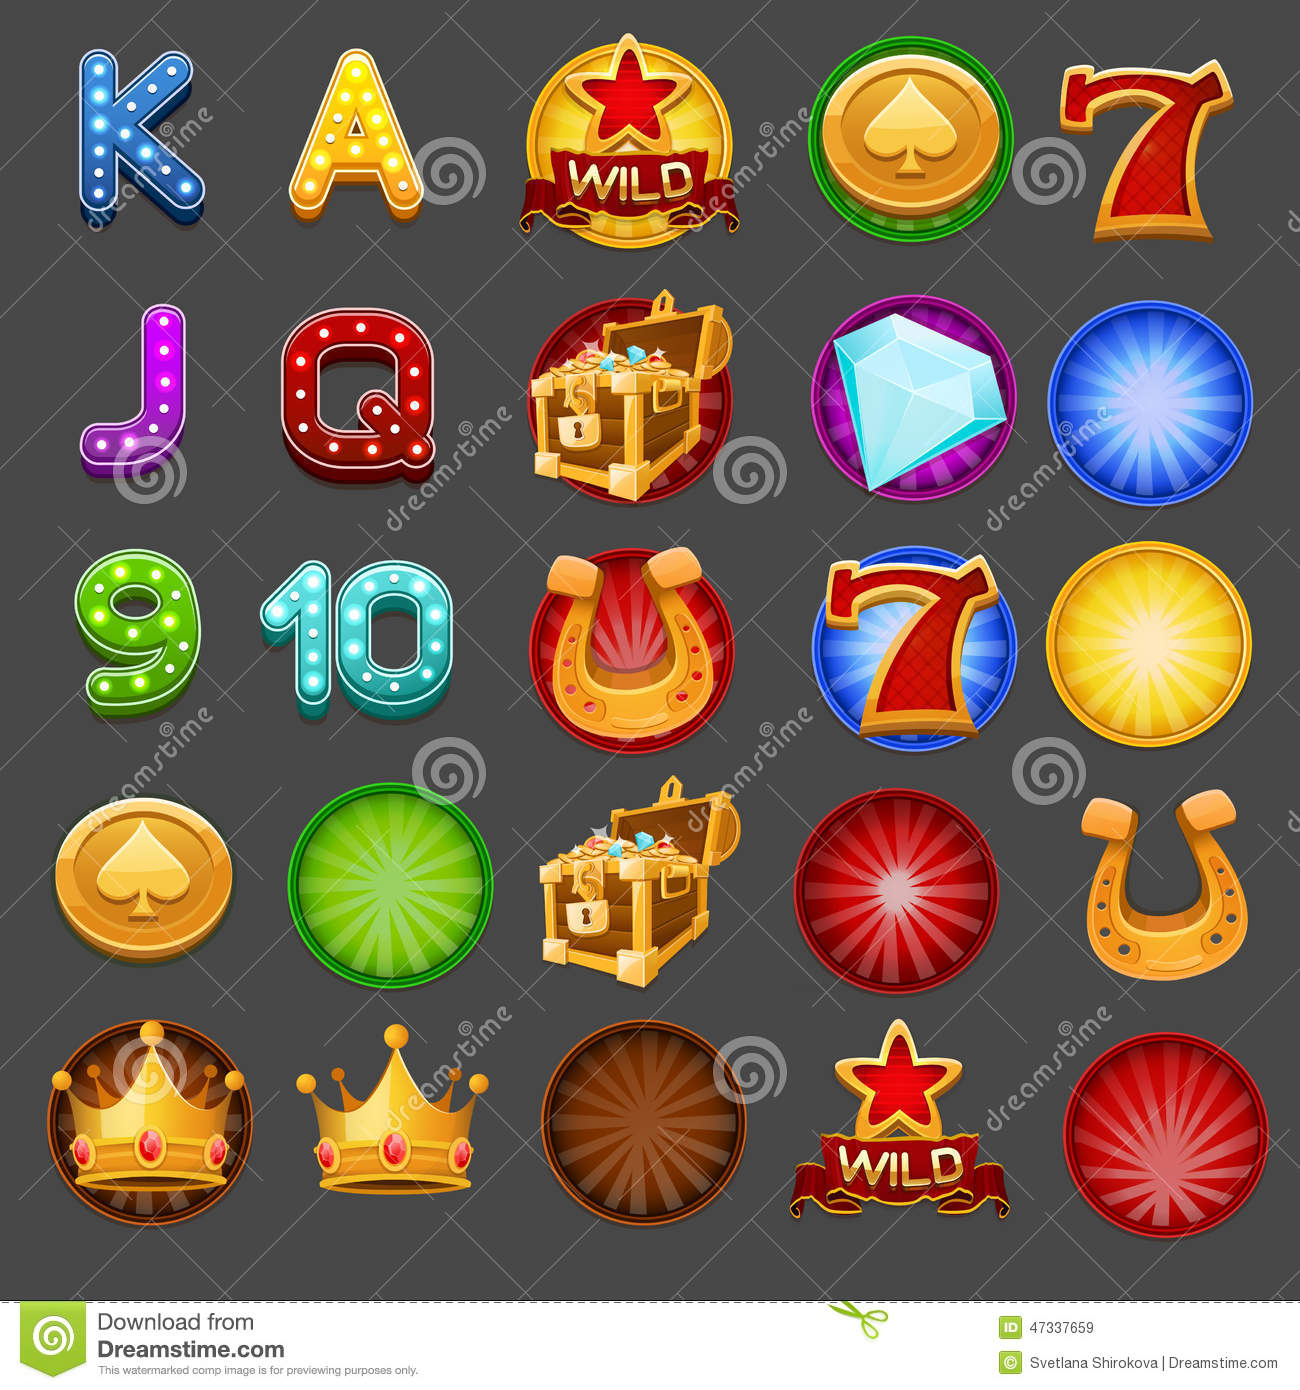 All free slots games with Wild Symbols - 3